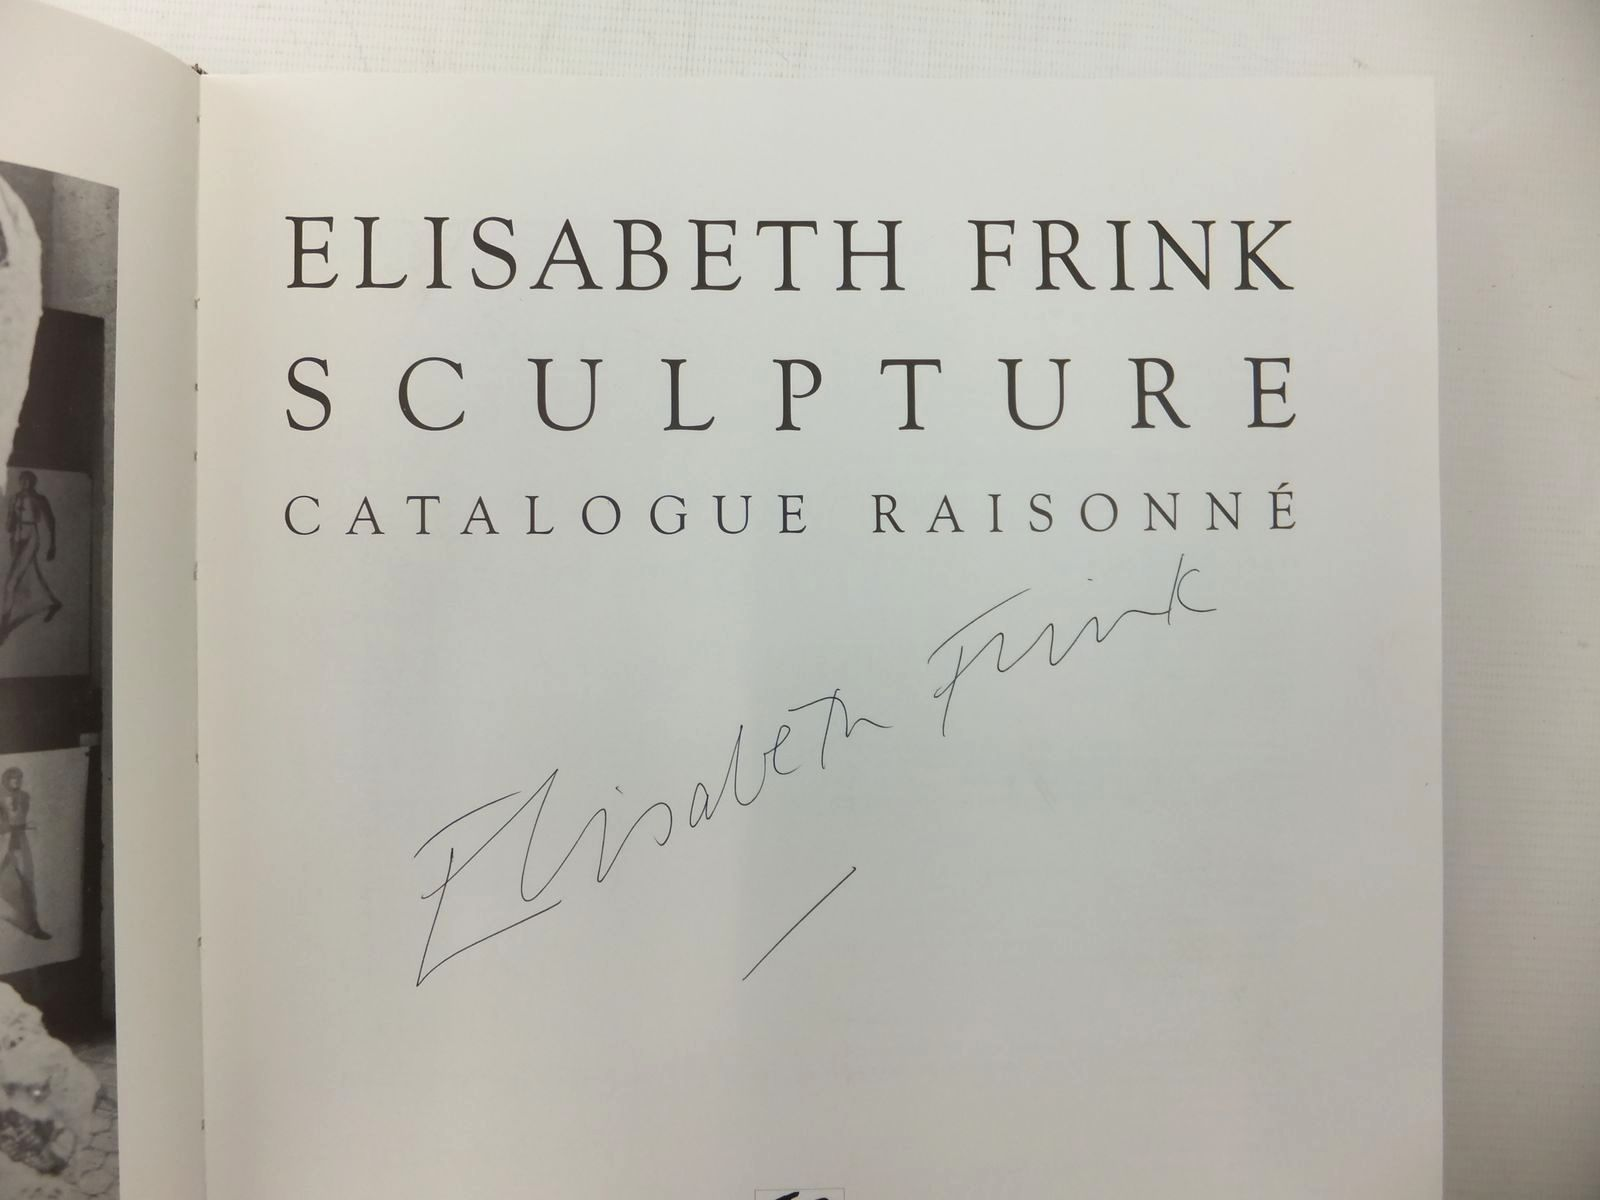 Photo of ELISABETH FRINK SCULPTURE CATALOGUE RAISONNE written by Frink, Elisabeth published by Harpvale (STOCK CODE: 1609525)  for sale by Stella & Rose's Books